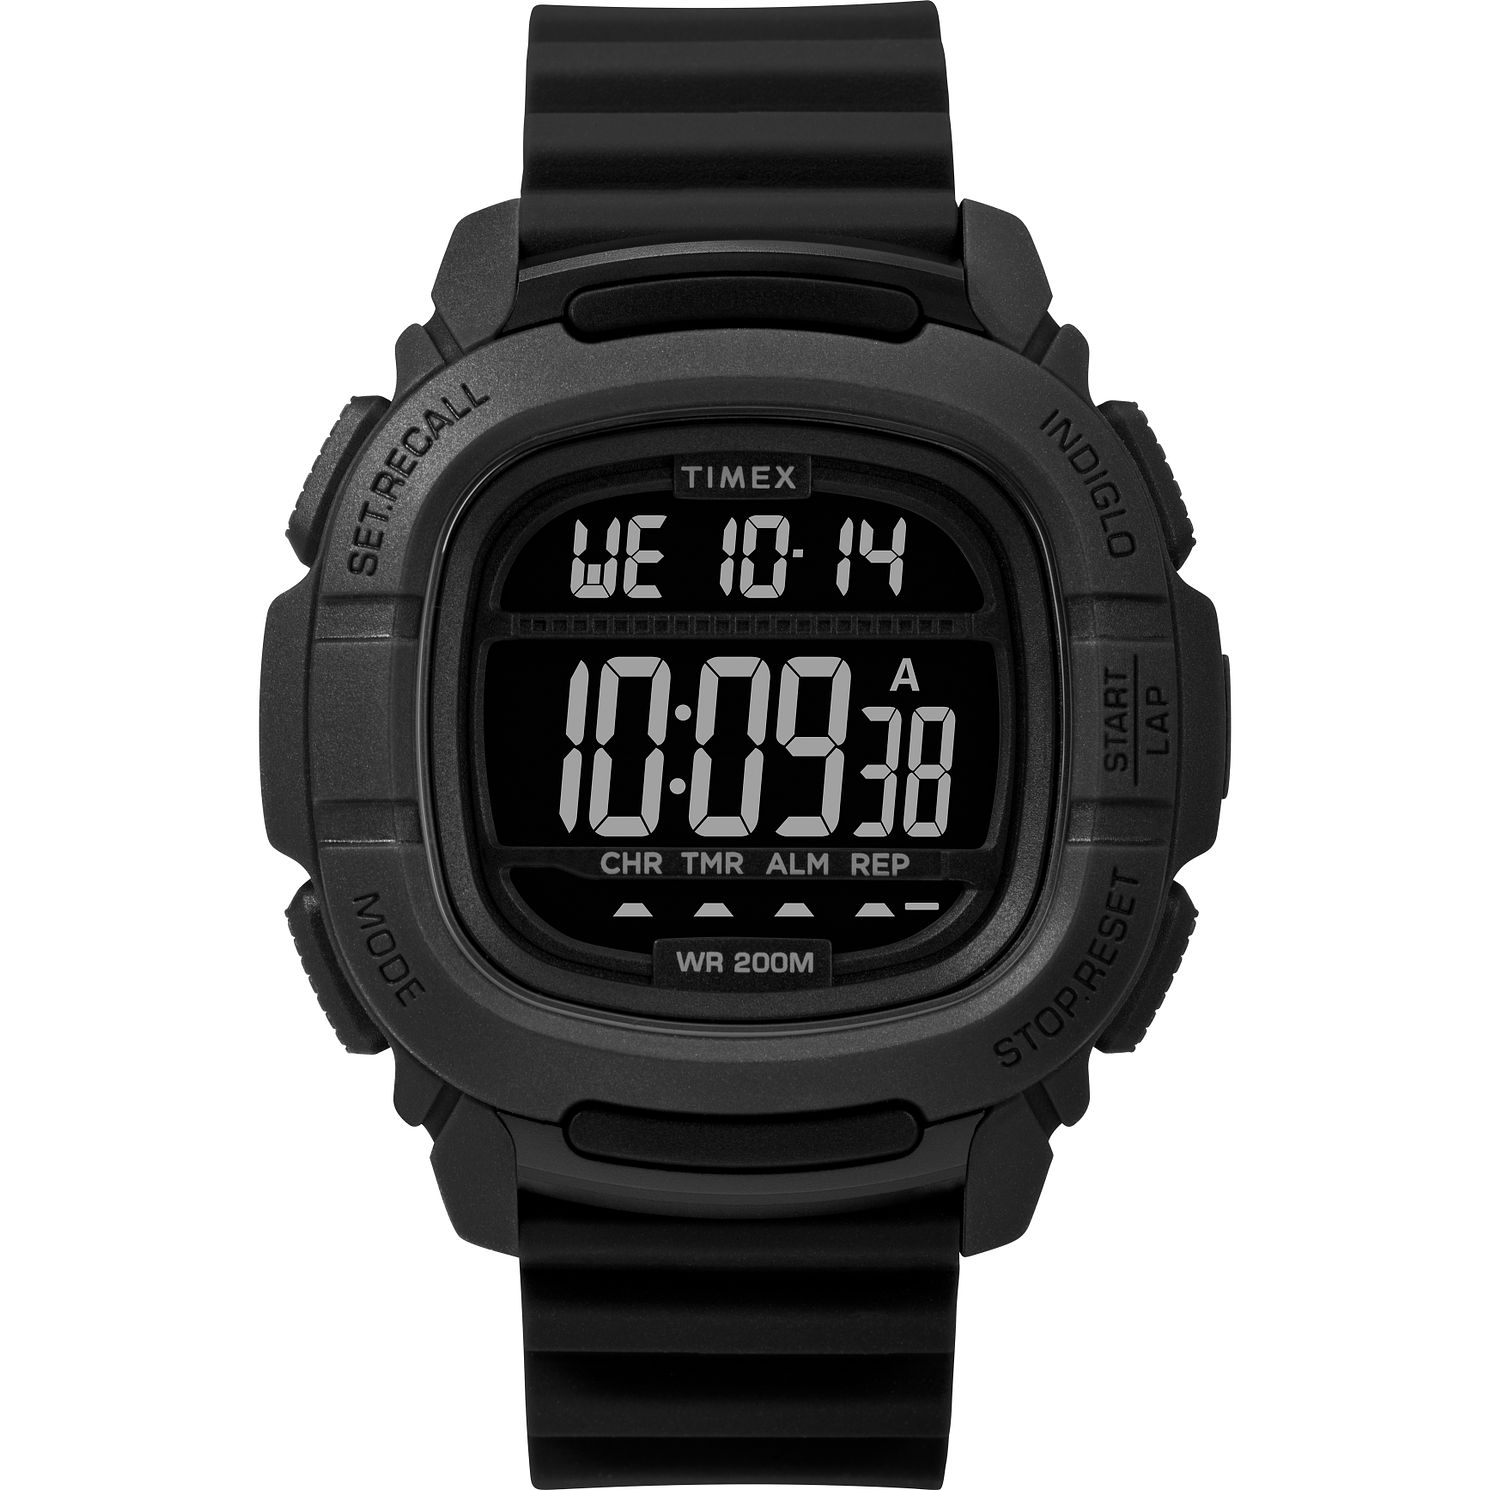 Timex BST.47 Men's Black Silicone Strap Watch - Product number 2374927